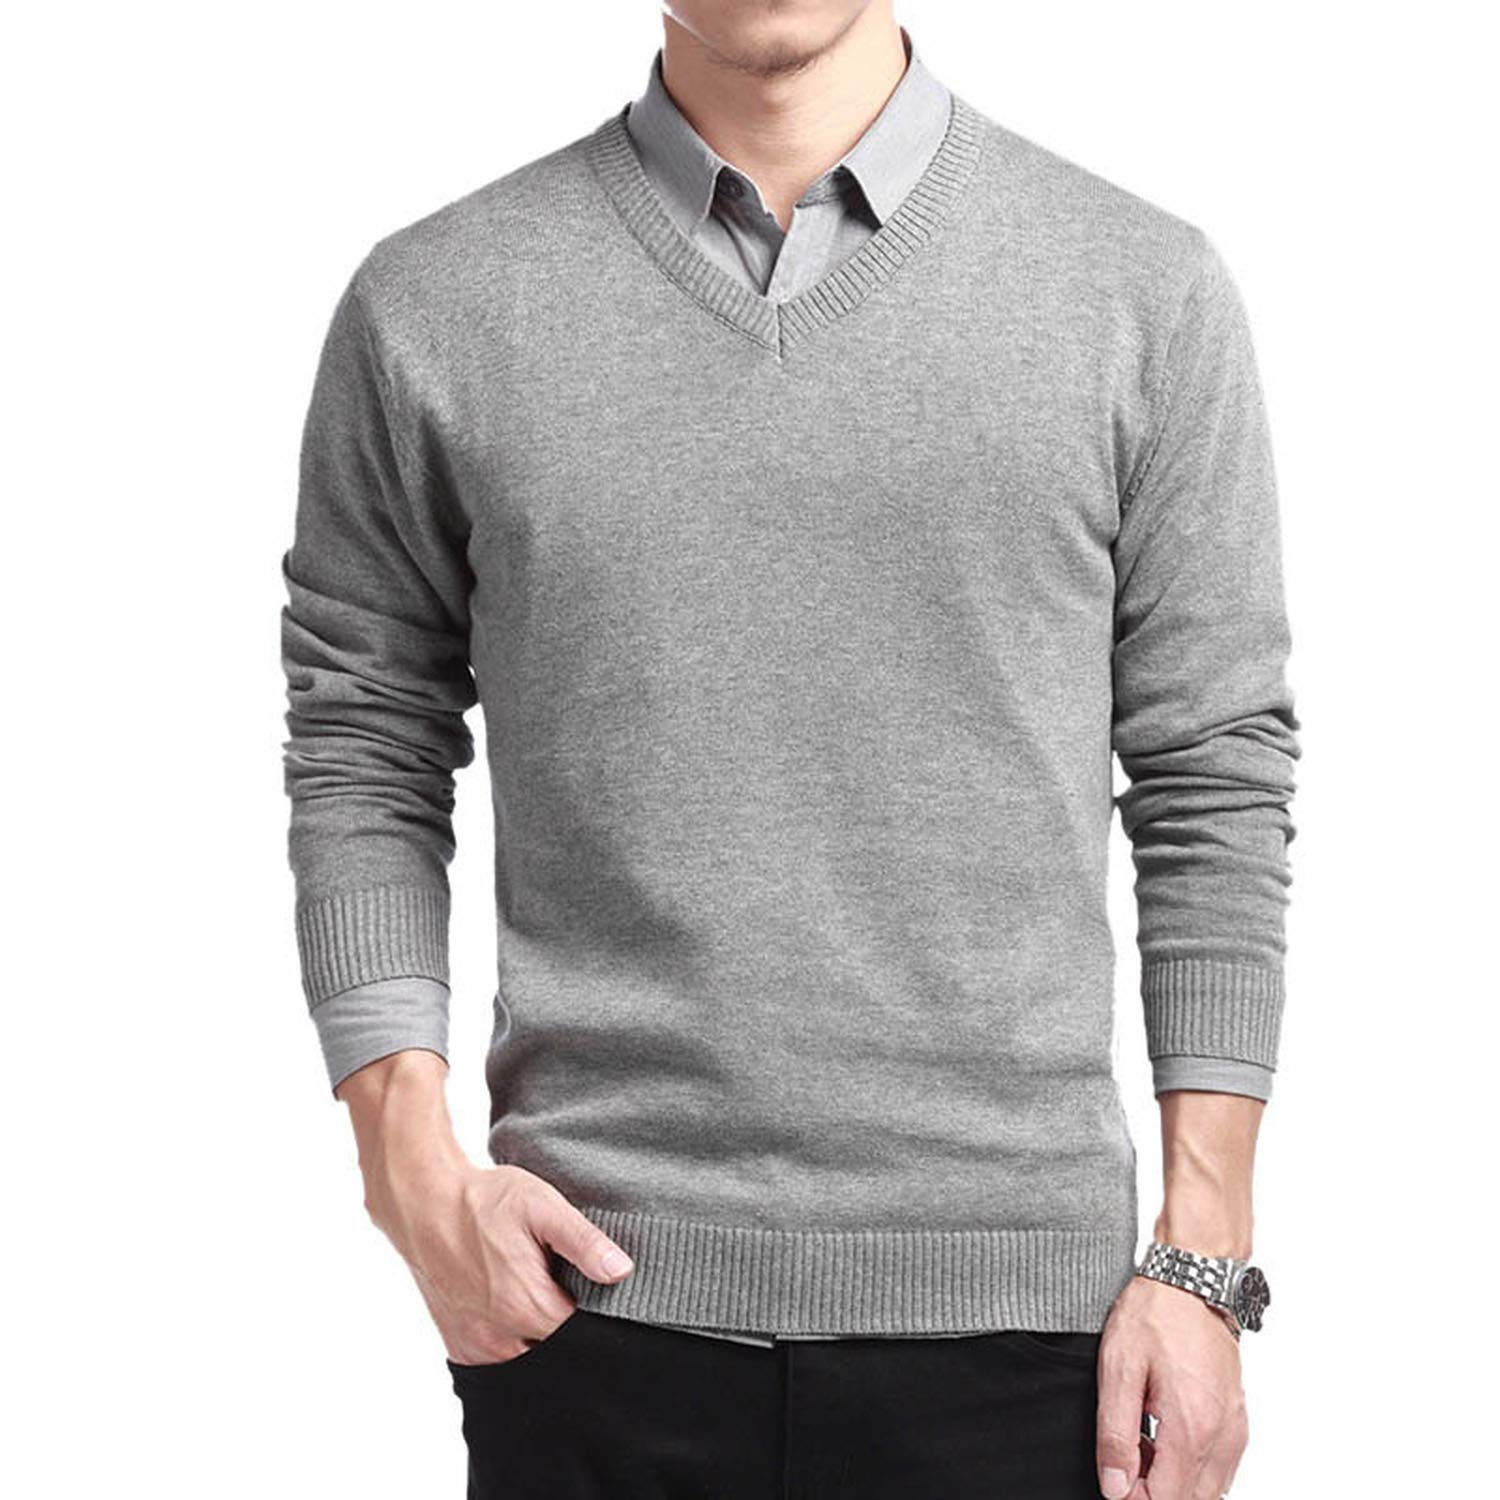 PANEW NewSweater Men Slim Fit Mens Sweaters Male Autumn Fashion Casual Tops Hots